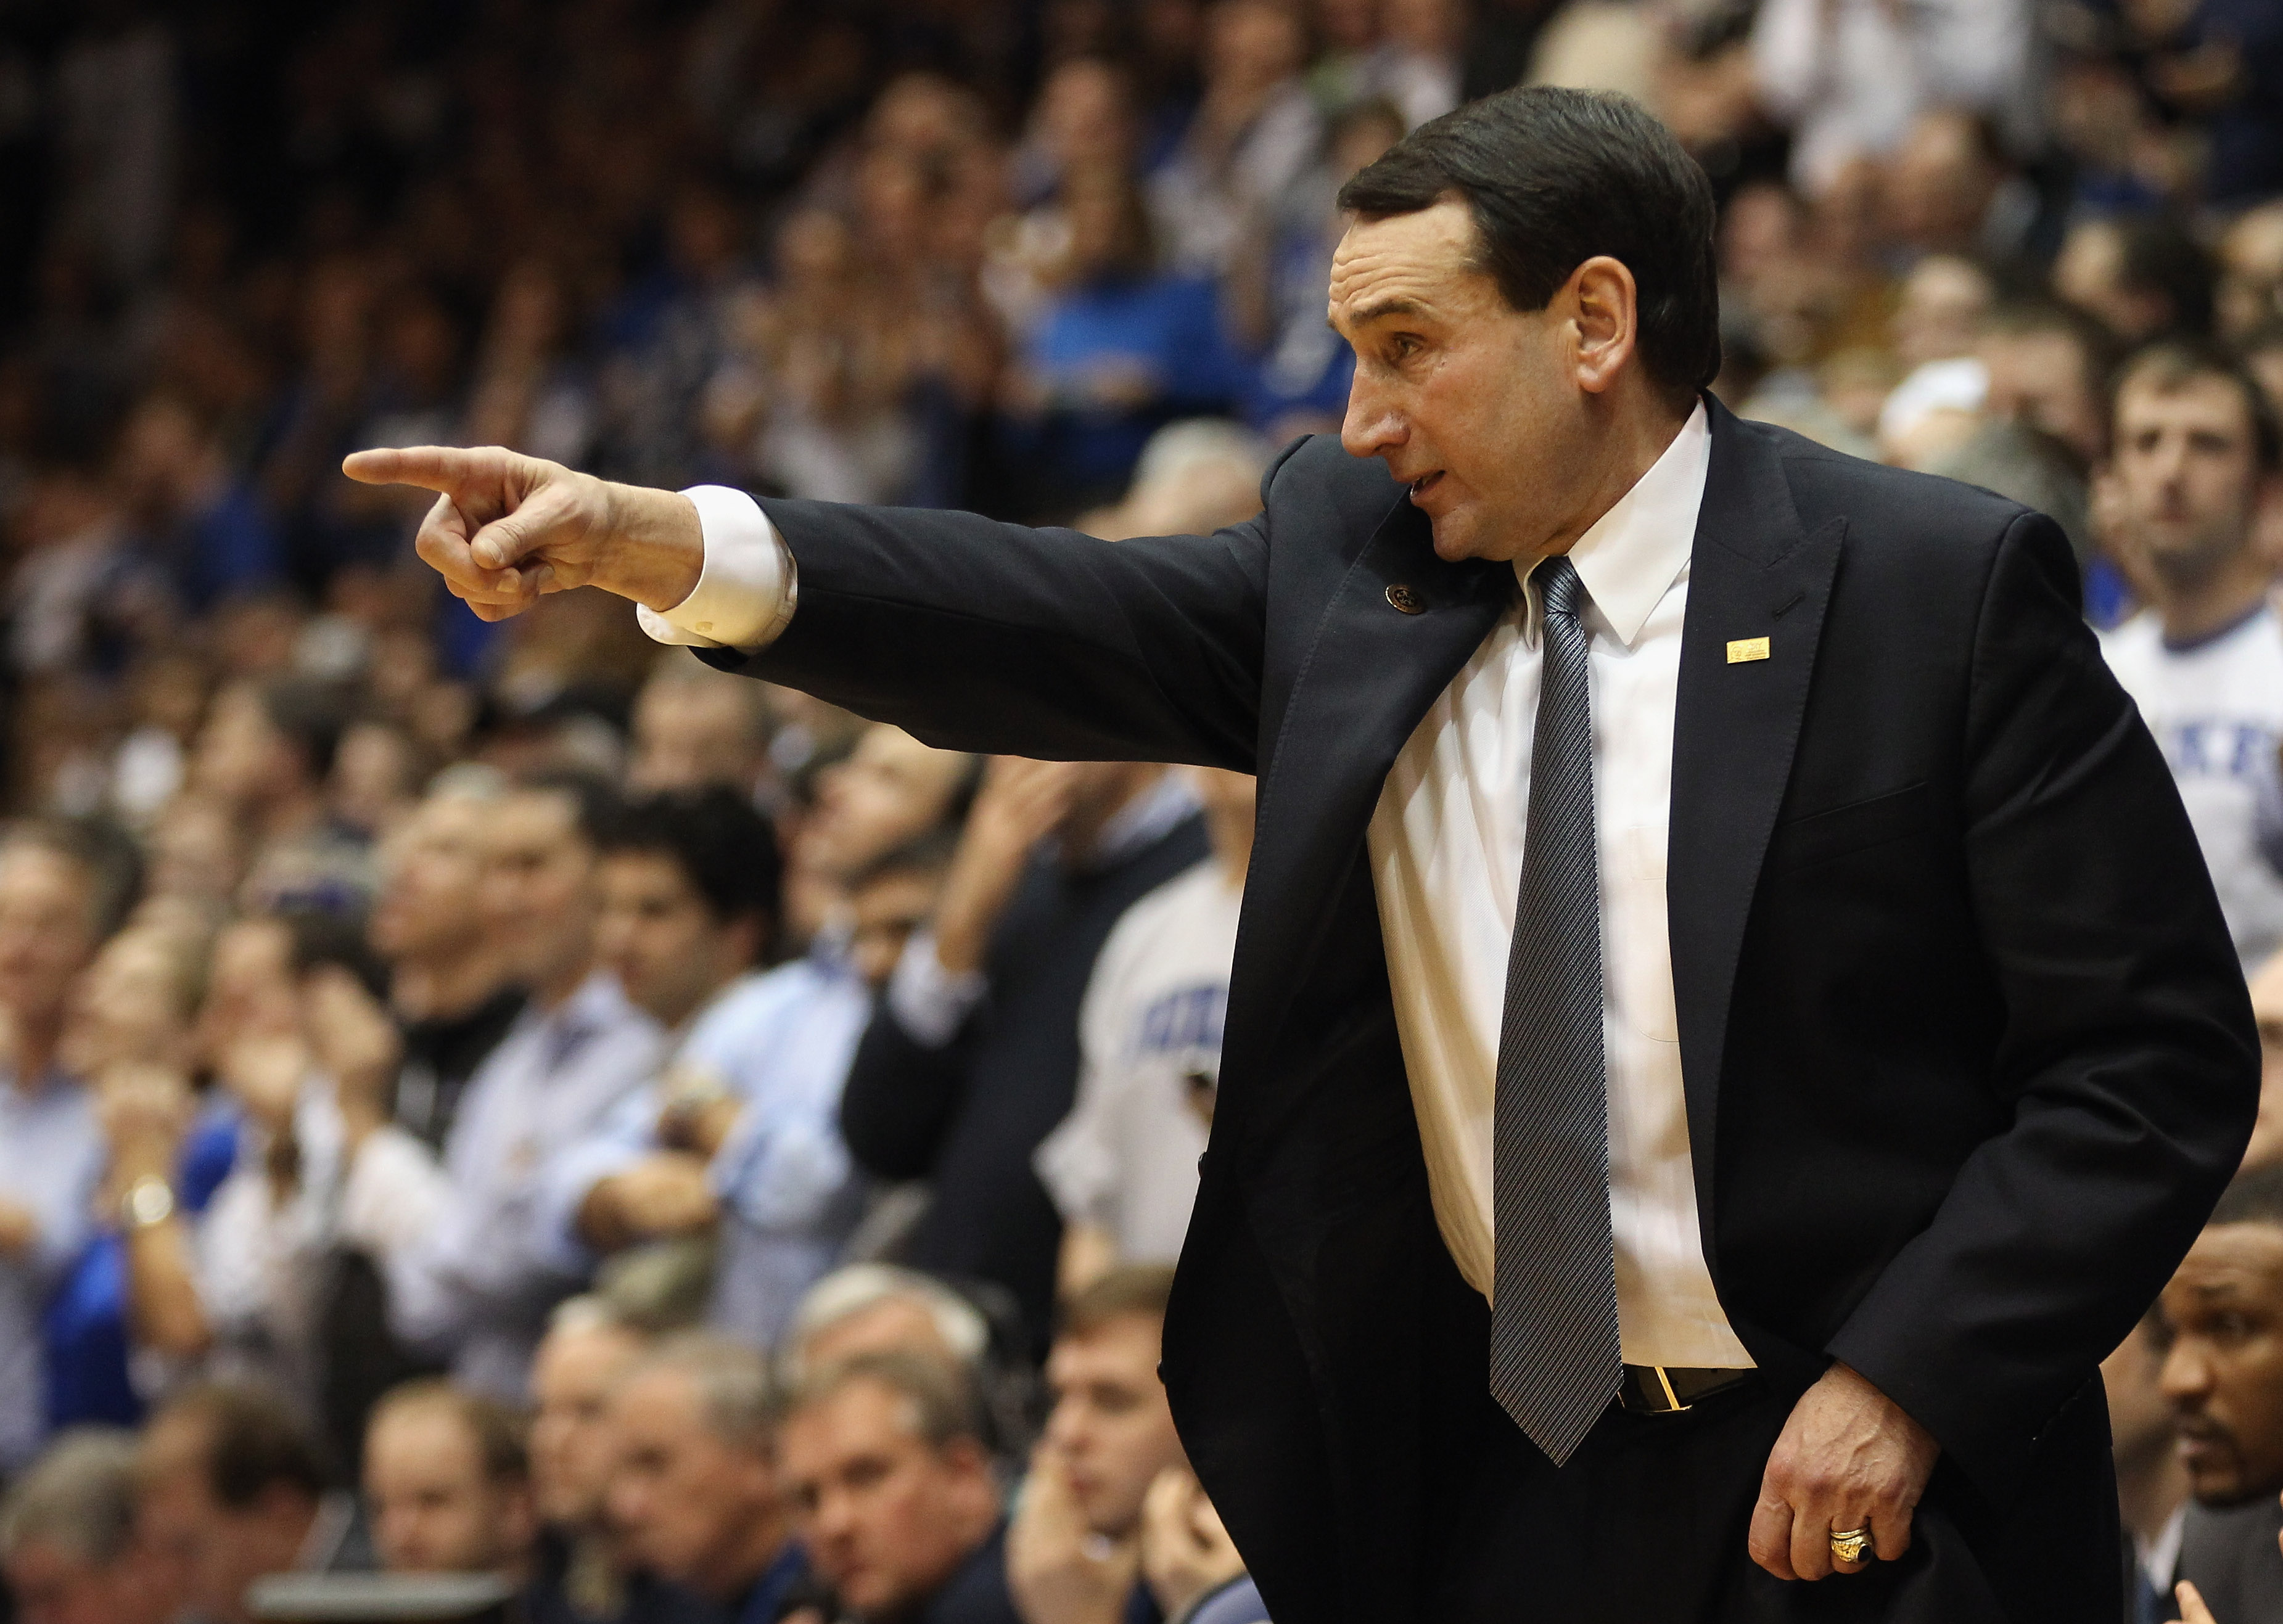 DURHAM, NC - FEBRUARY 09:  Head coach Mike Krzyzewski of the Duke Blue Devils yells to his team during their game against the North Carolina Tar Heels at Cameron Indoor Stadium on February 9, 2011 in Durham, North Carolina.  (Photo by Streeter Lecka/Getty